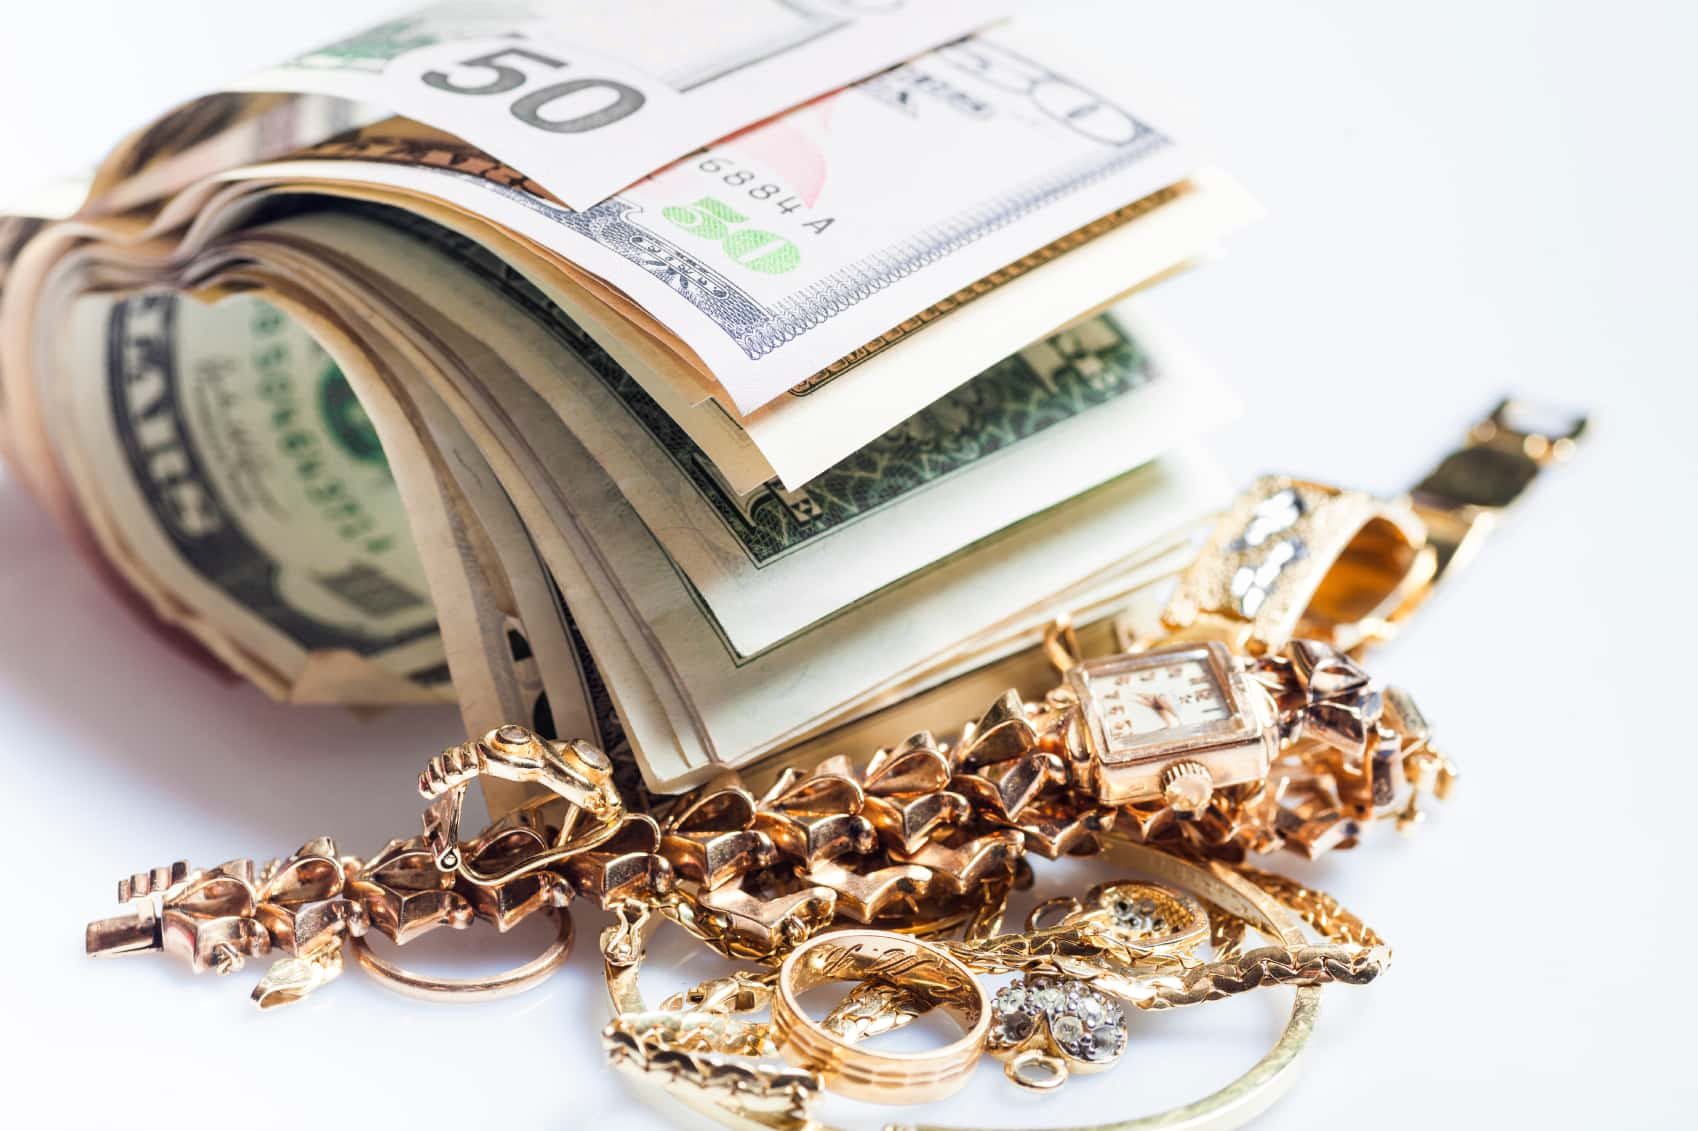 What Happens to the Gold After the Old Jewelry is Cashed In?